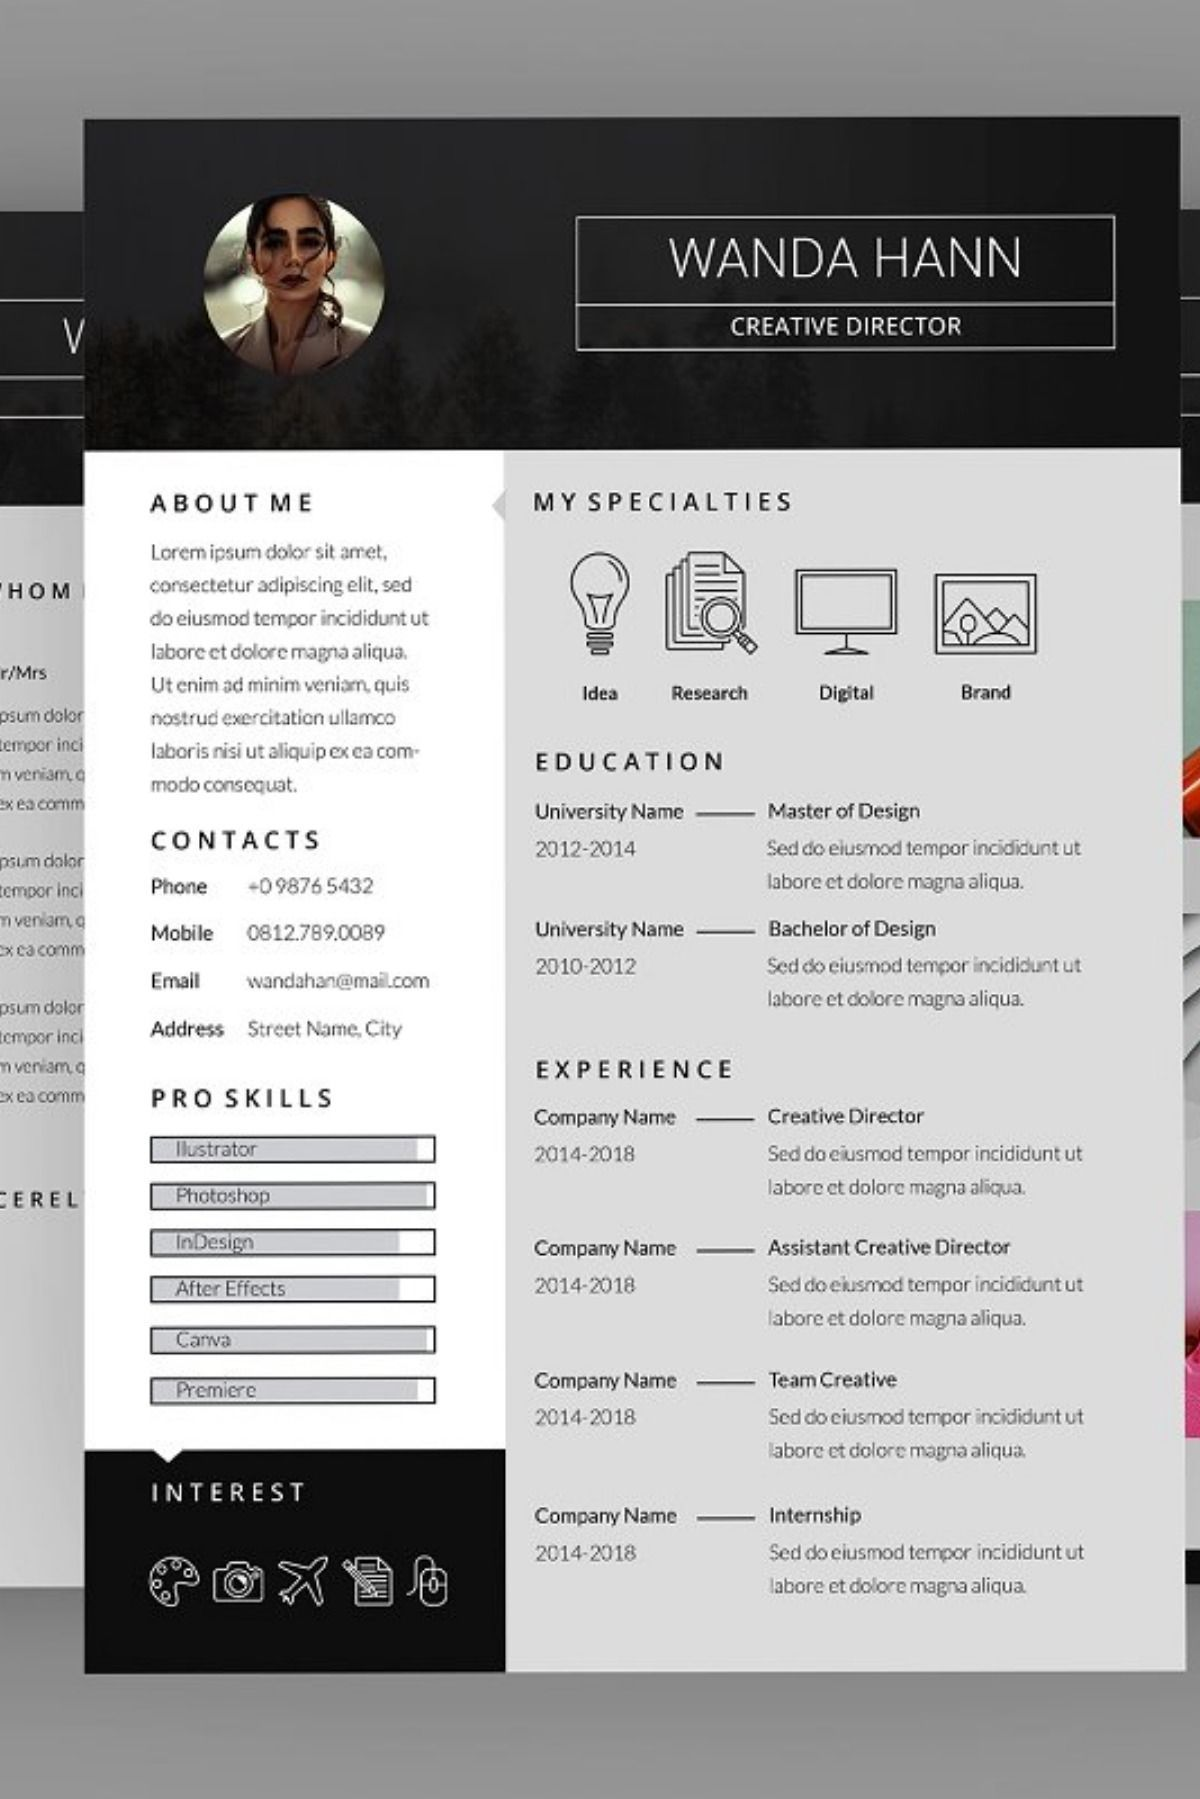 Delight CV Resume Designer. This layout is suitable for